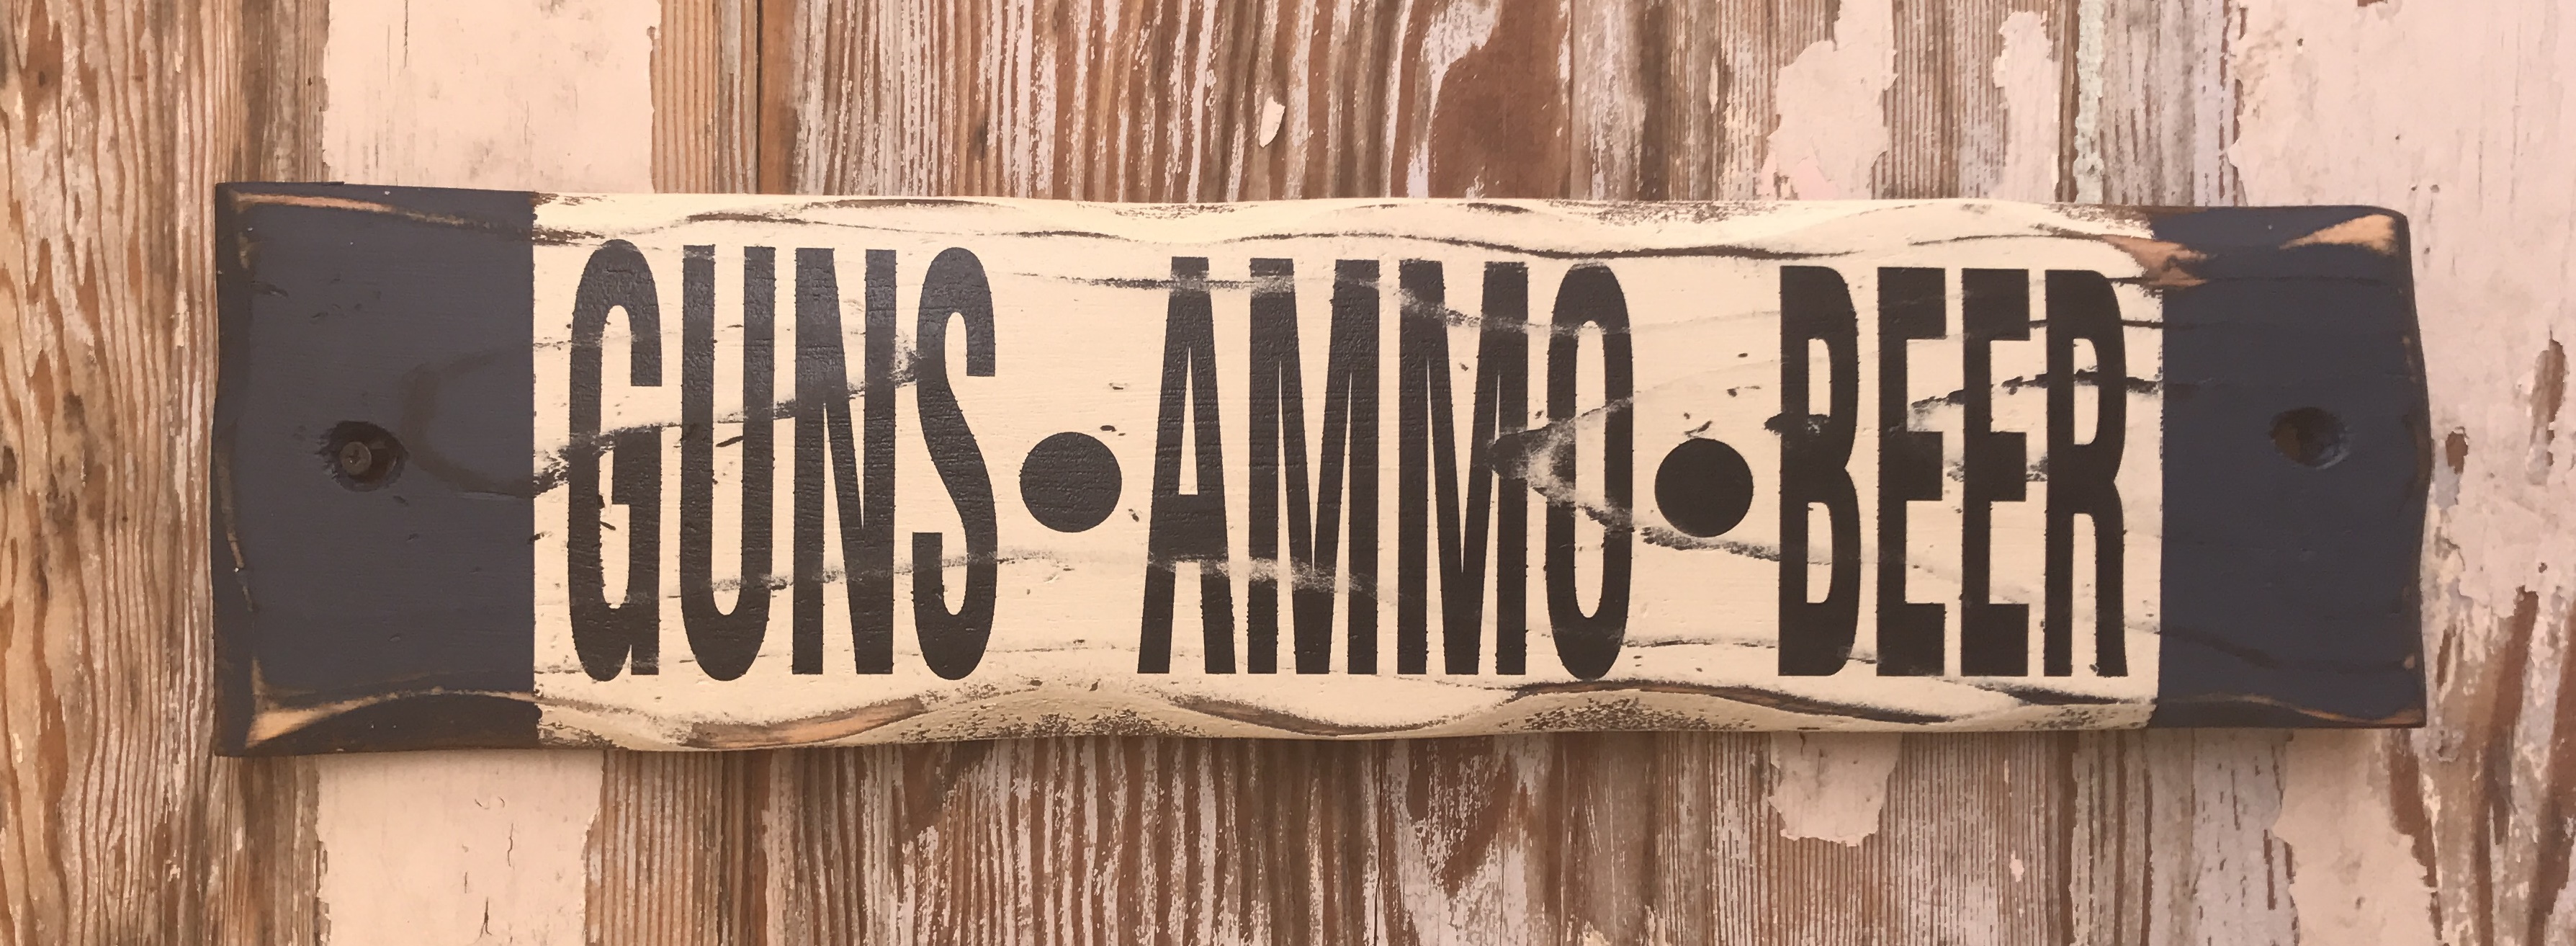 Guns, Ammo, Beer.  Rustic Wood Sign